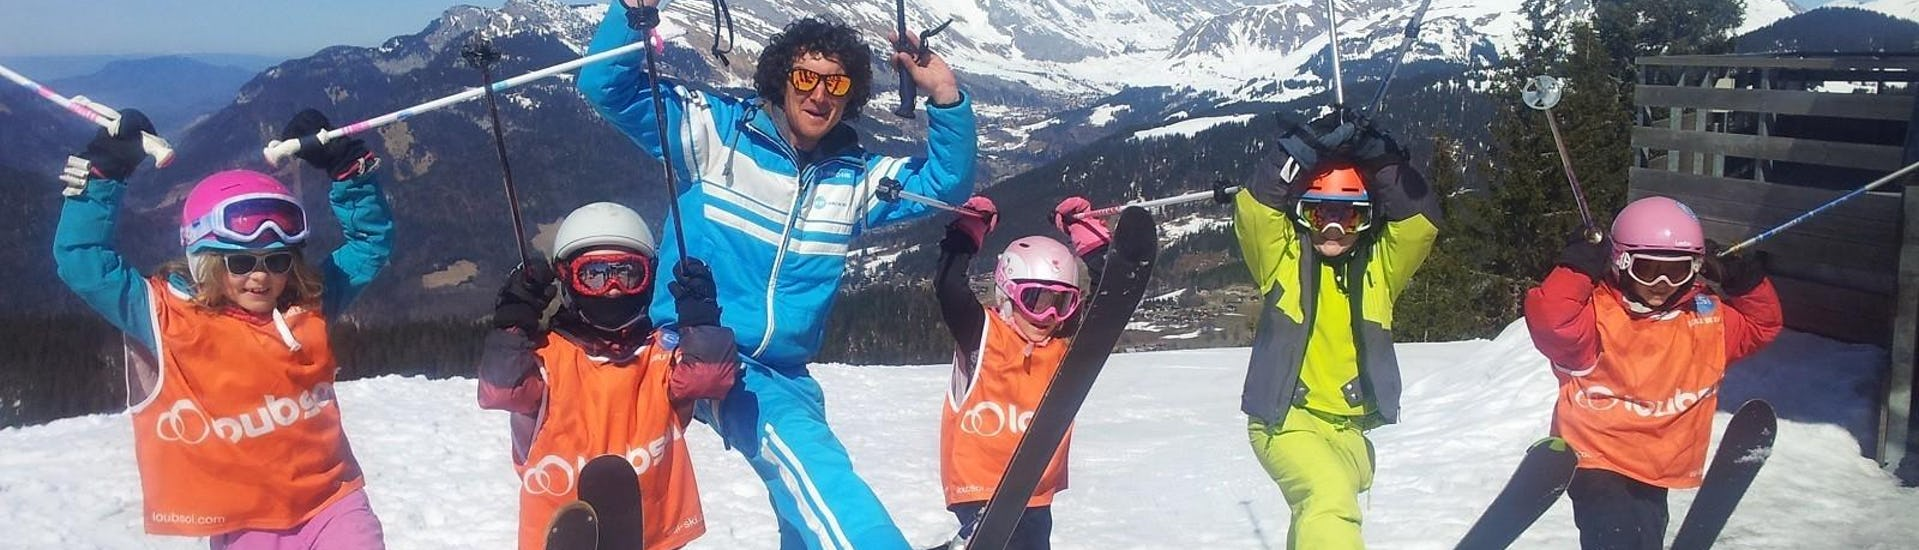 Ski Lessons for Kids (7-14 years) - February